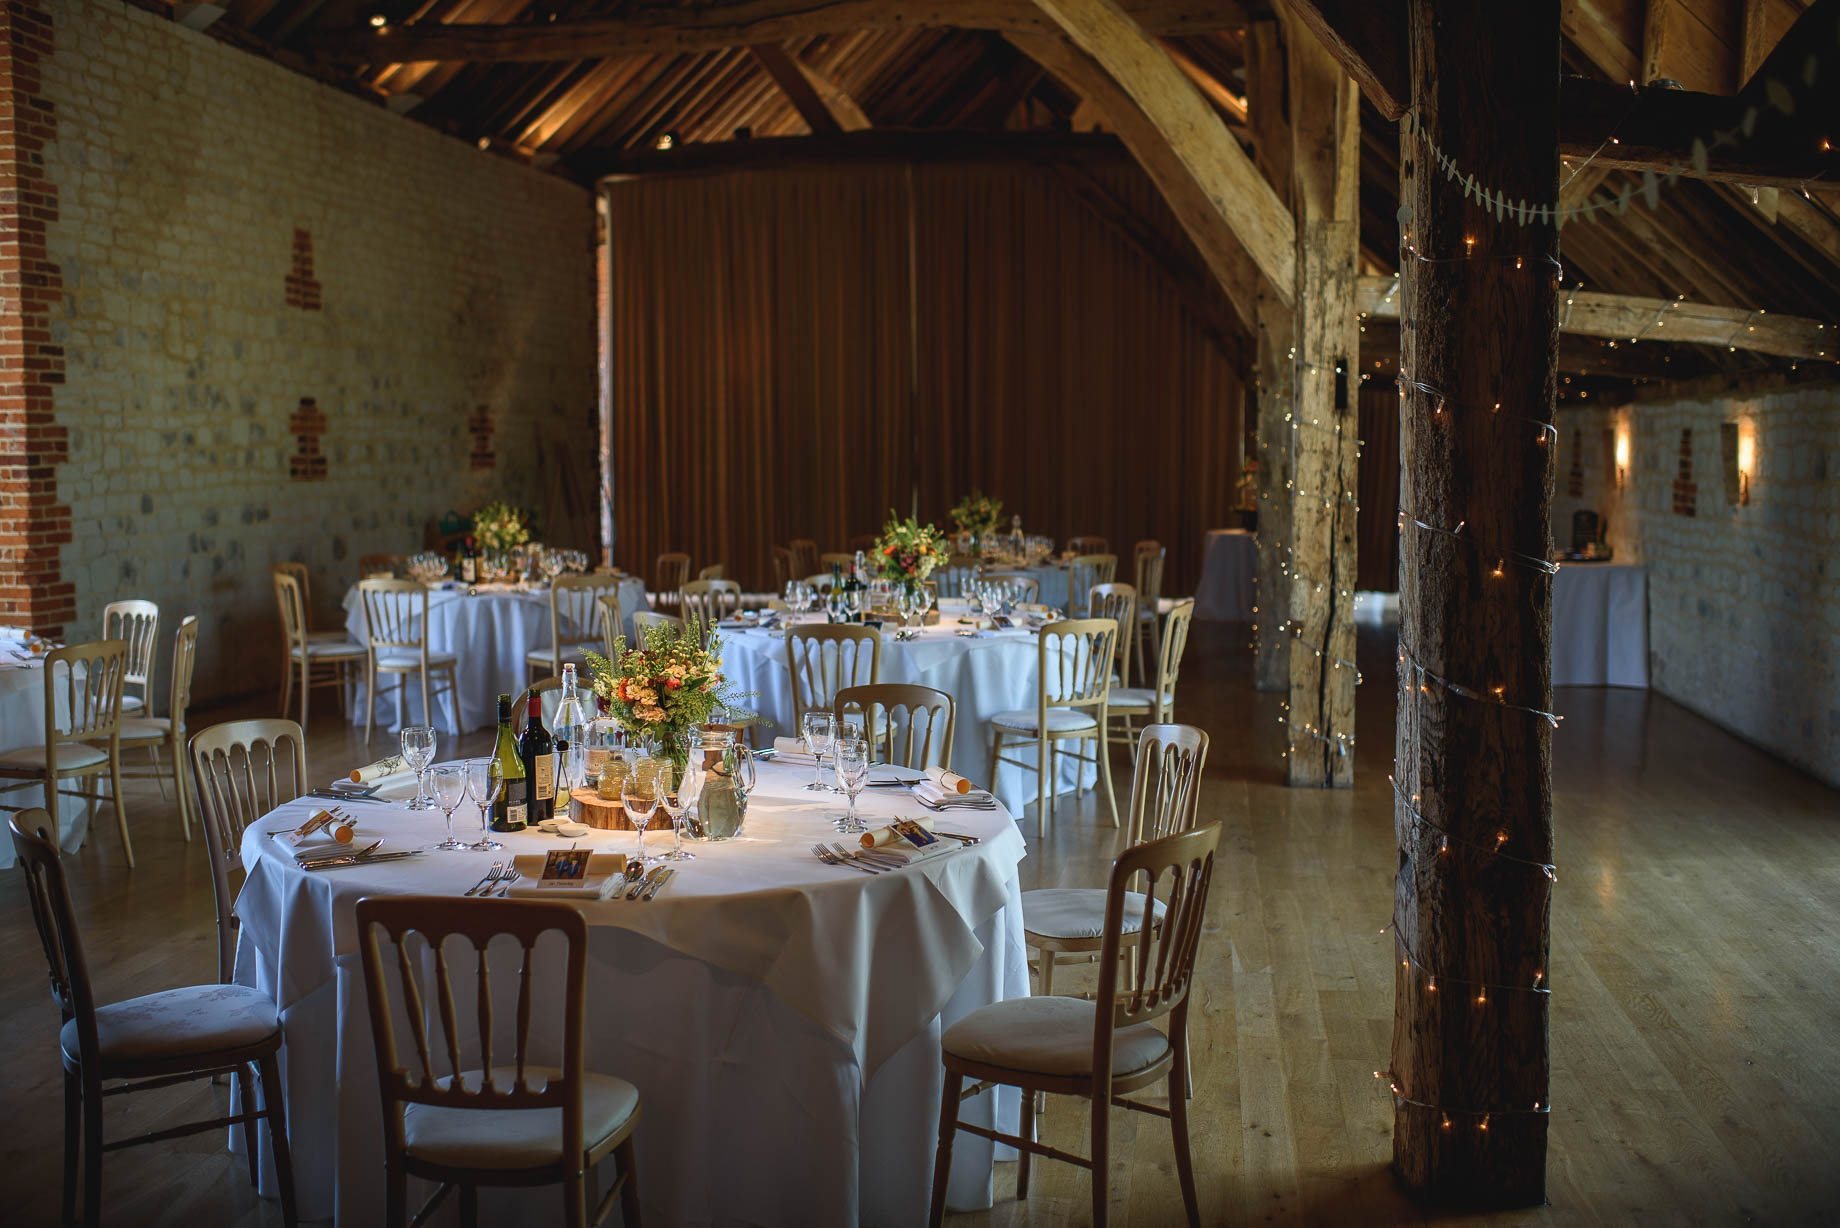 Bury Court Barn wedding photography by Guy Collier - Jo and Jamie (95 of 160)